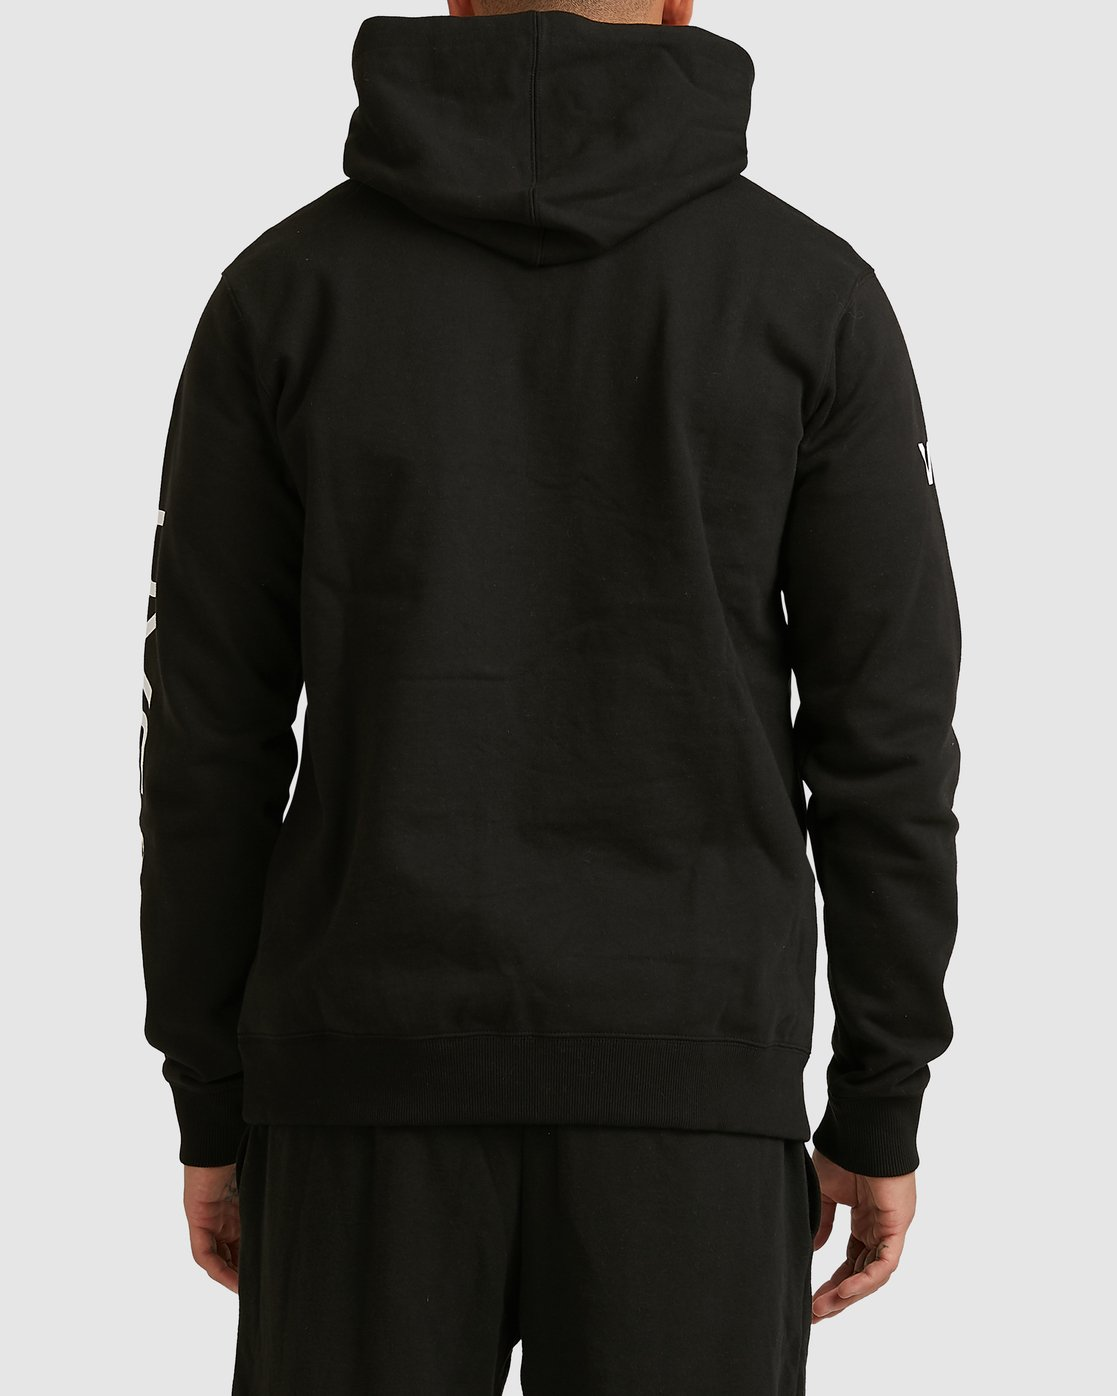 2 PARILLO BOXING CLUB HOODIE Black R317165 RVCA